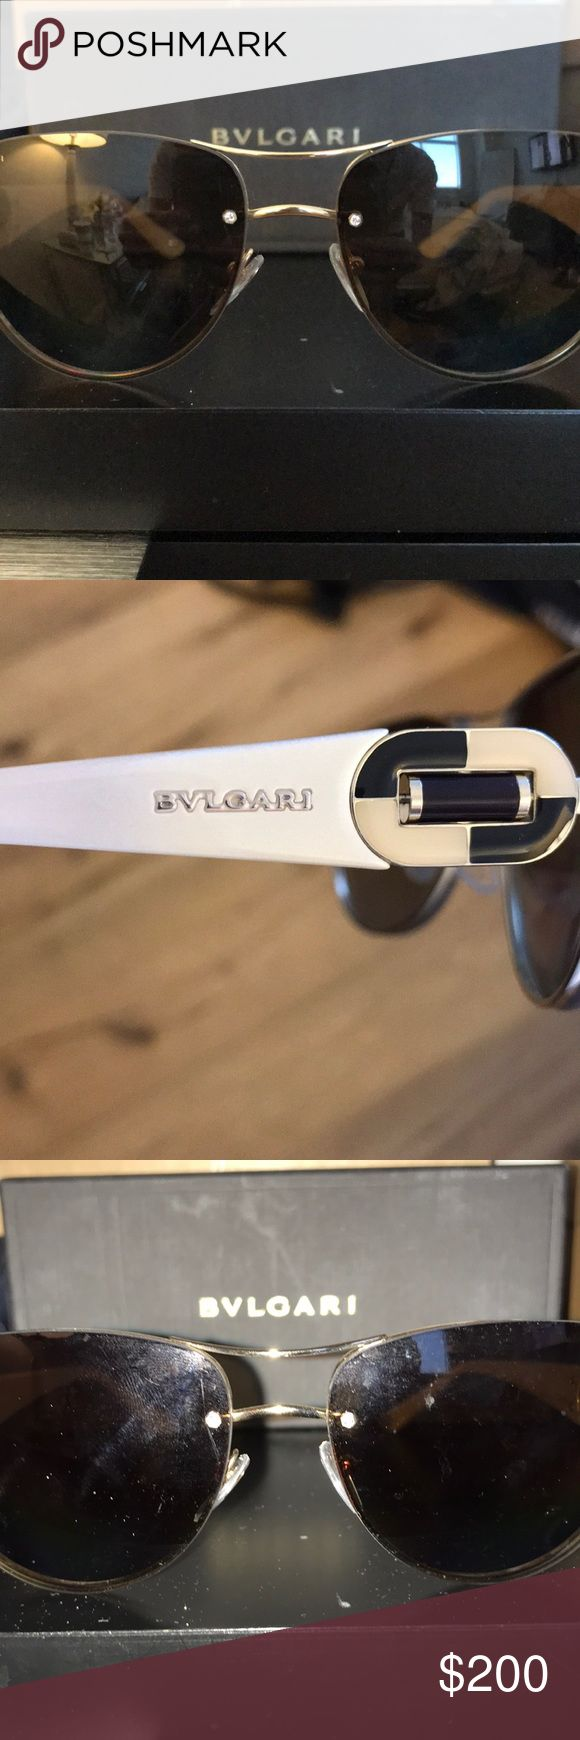 Authentic Bvlgari Sunglasses. W/ Case & Auth Card Authentic Bvlgari Sunglasses. Aviator Style. With Case, Authenticity Card, Duster. Beige & Cream. Worn Twice.    📌 NO TRADES  ❌ NO LOWBALL OFFERS 🛑 NO RUDE COMMENTS  ❗️Please don't discuss prices in the comment box. Please make a reasonable offer and I will either counter, accept or decline. Bulgari Accessories Sunglasses